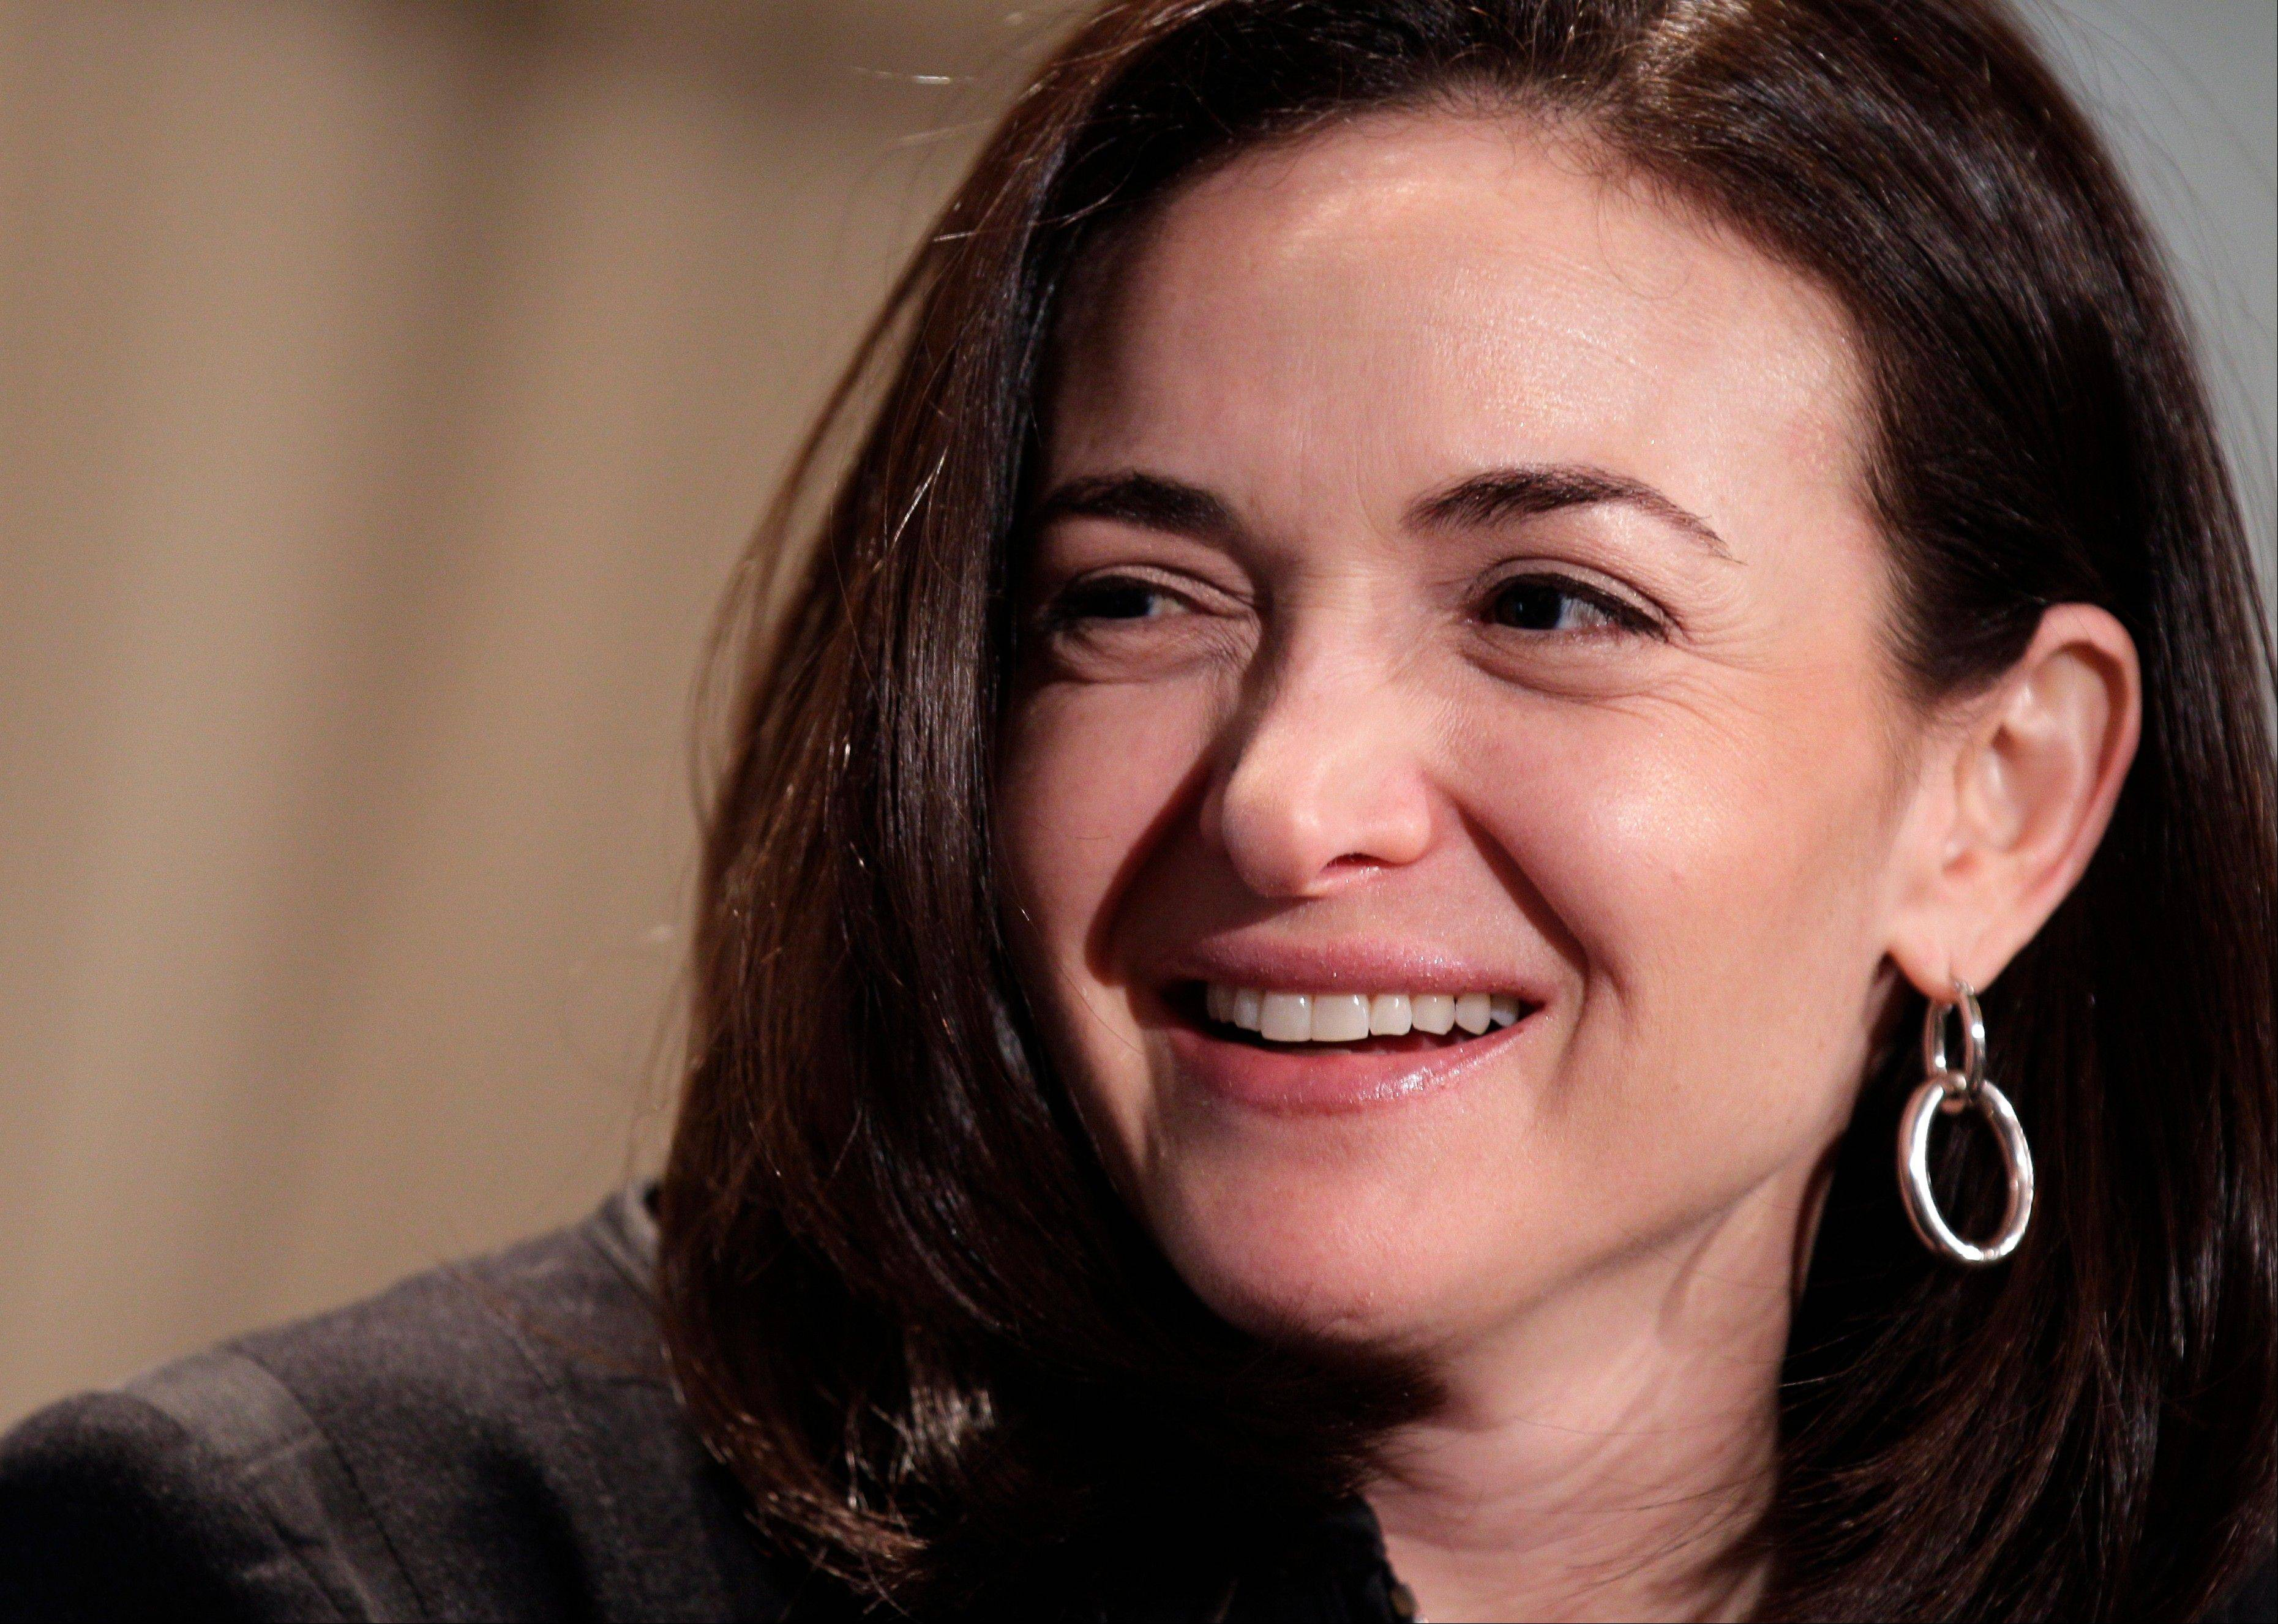 Sheryl Sandberg, Facebook�s chief operating officer, aims to arm women with the tools and guidance they need to keep moving forward in the workforce.